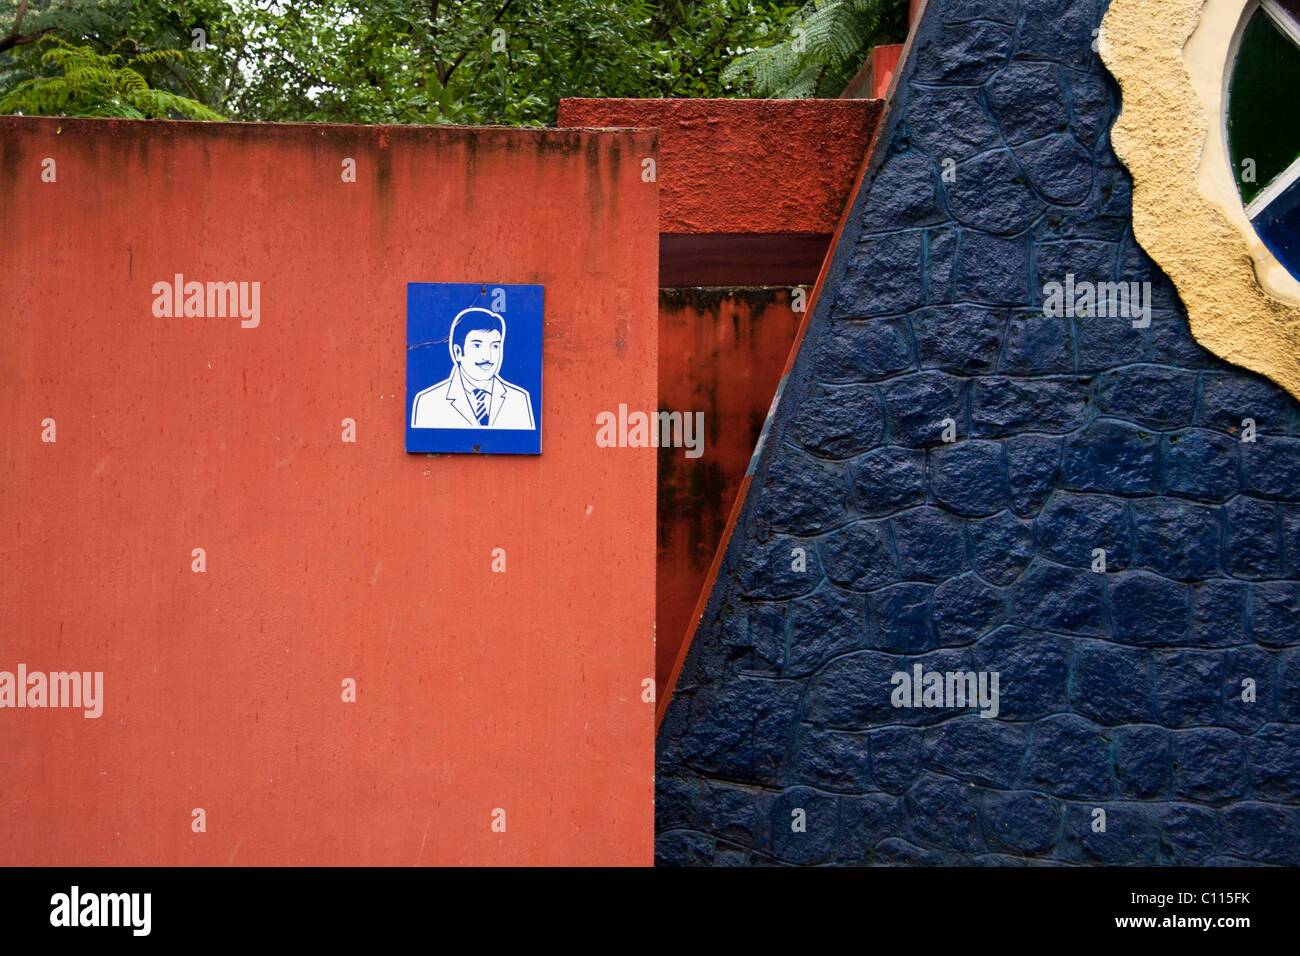 Blue men toilette sign on a red wall - Stock Image